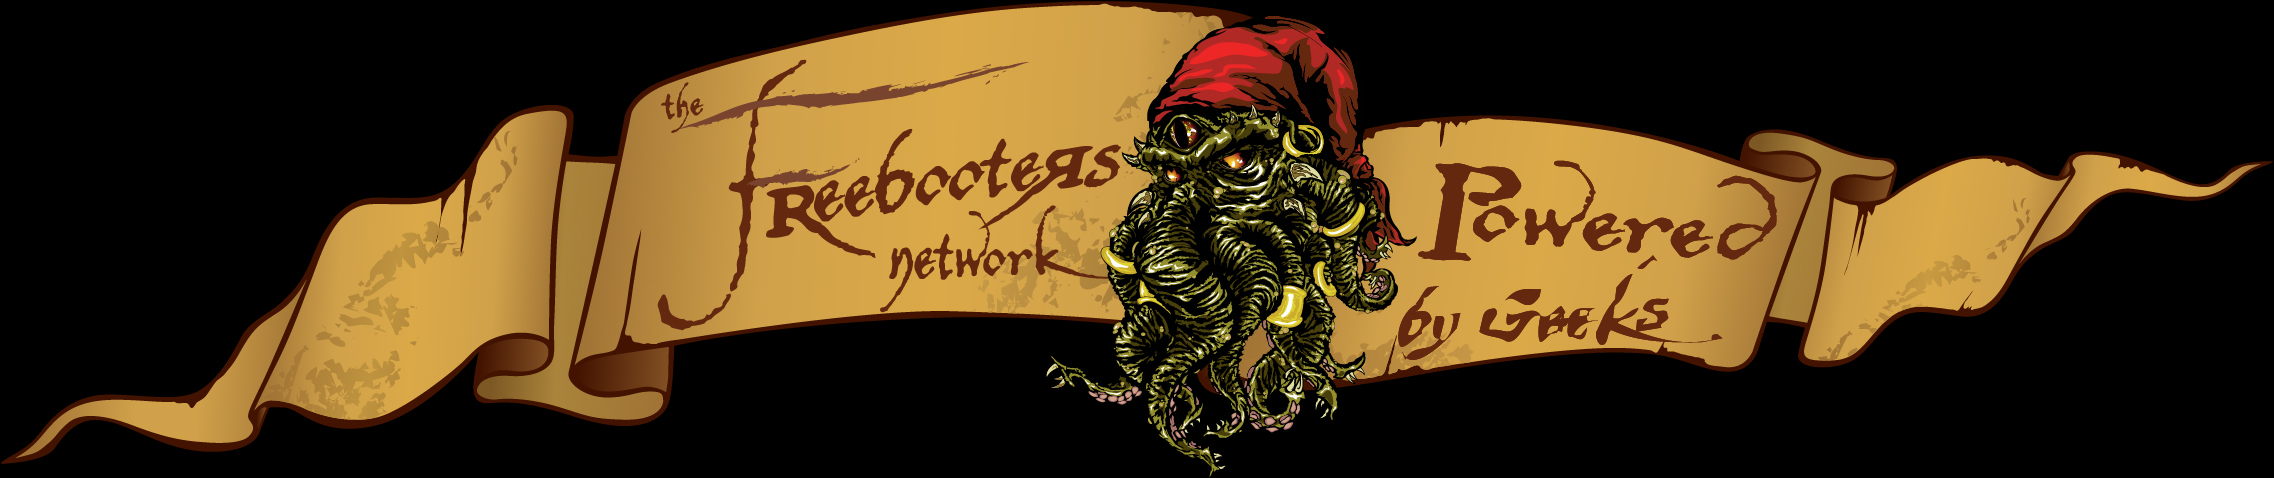 Logo for The Freebooters Network - Podcasts powered by geeks